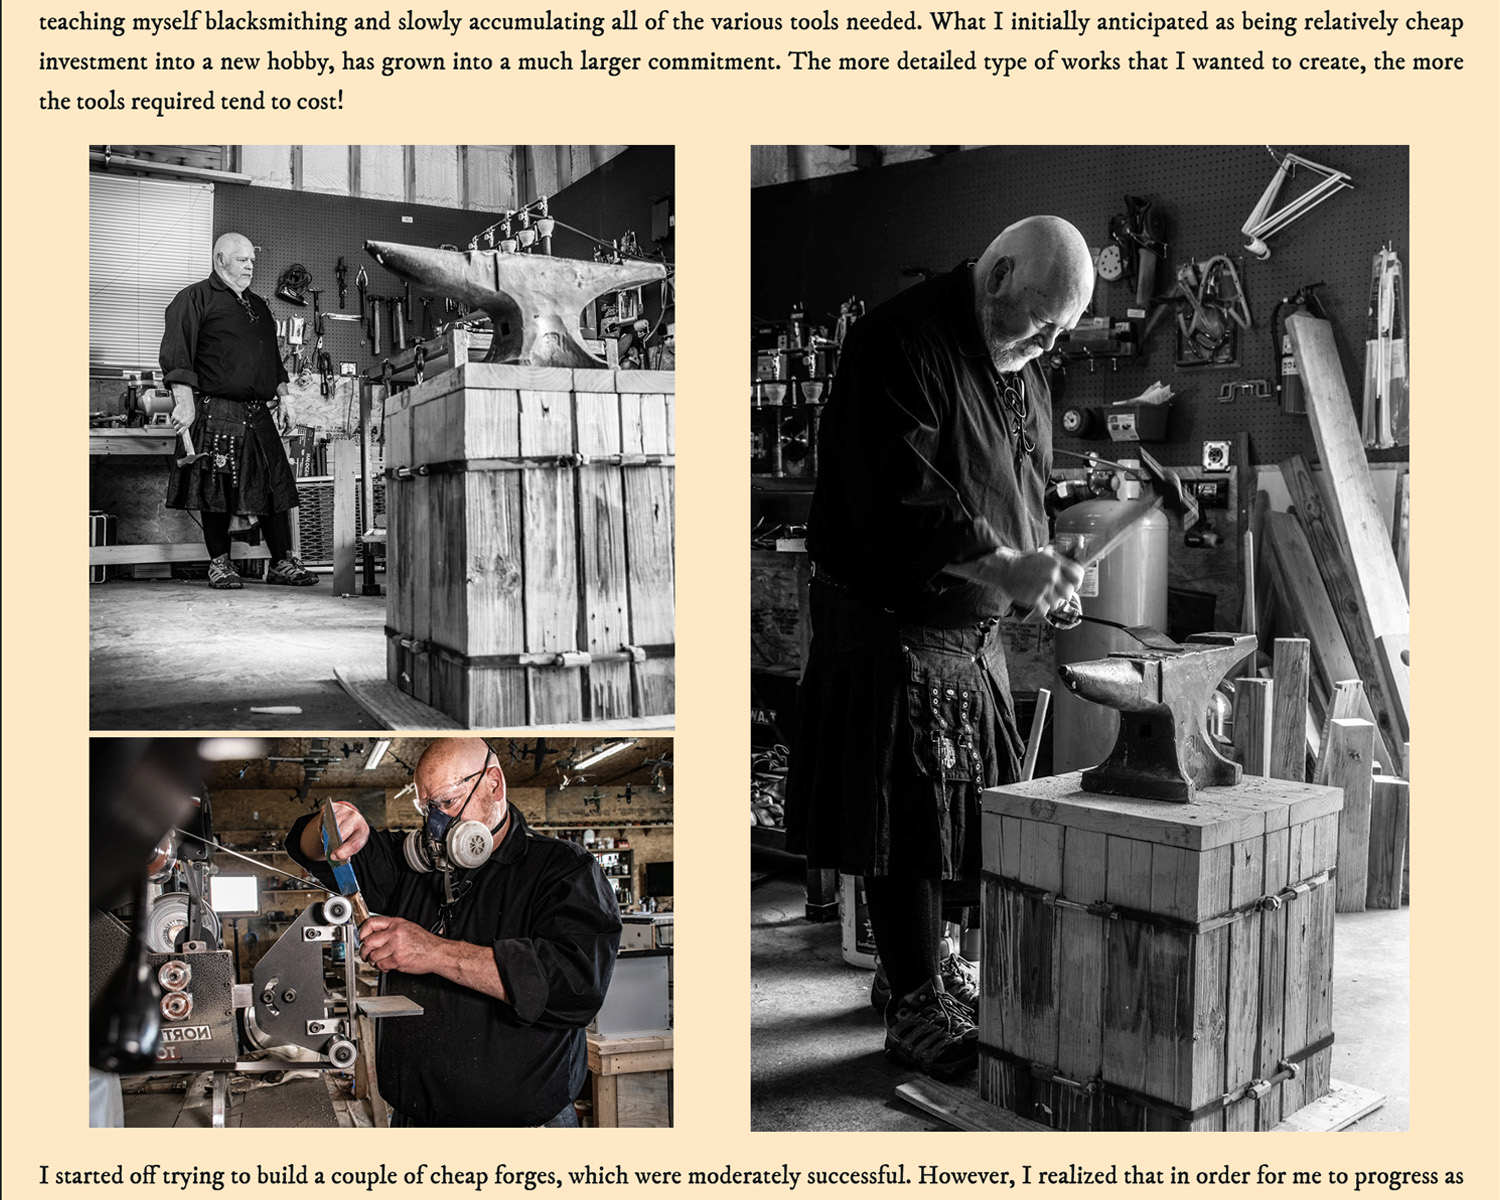 Pen and Steel Blacksmith screenshot page 2